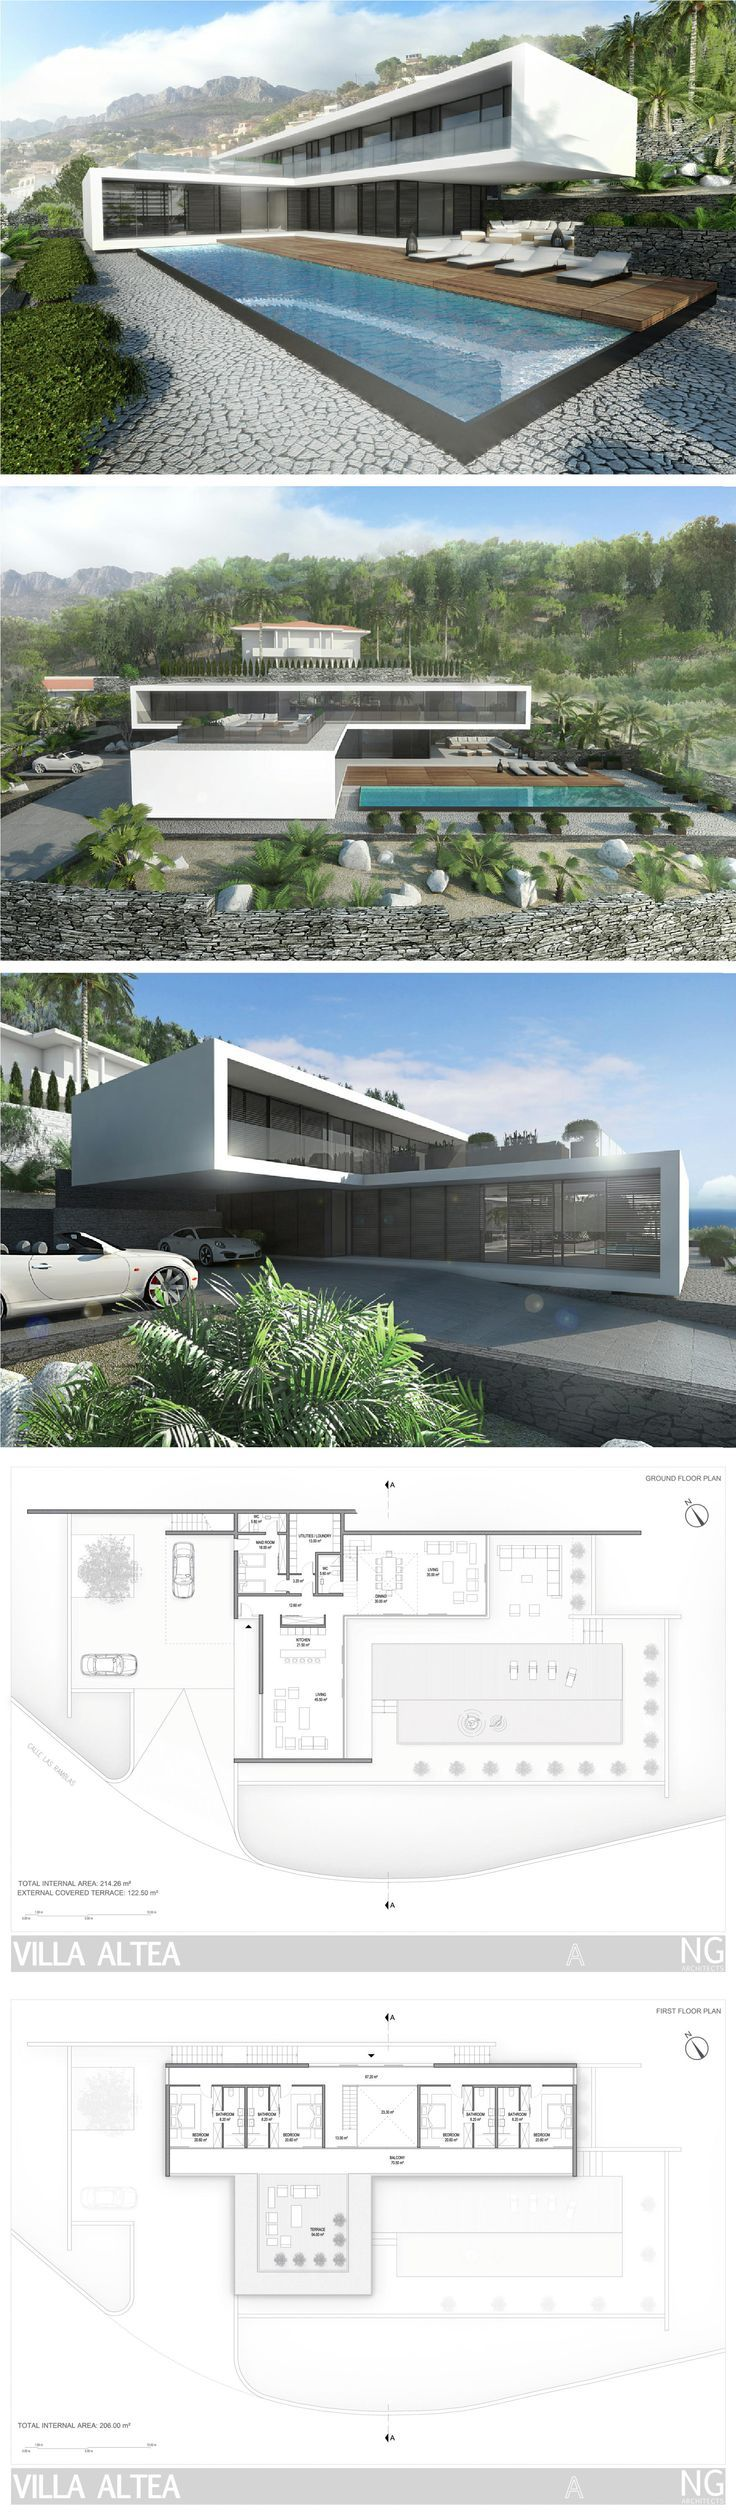 Modern villa in Spain by NG architects www.ngarchitects.lt